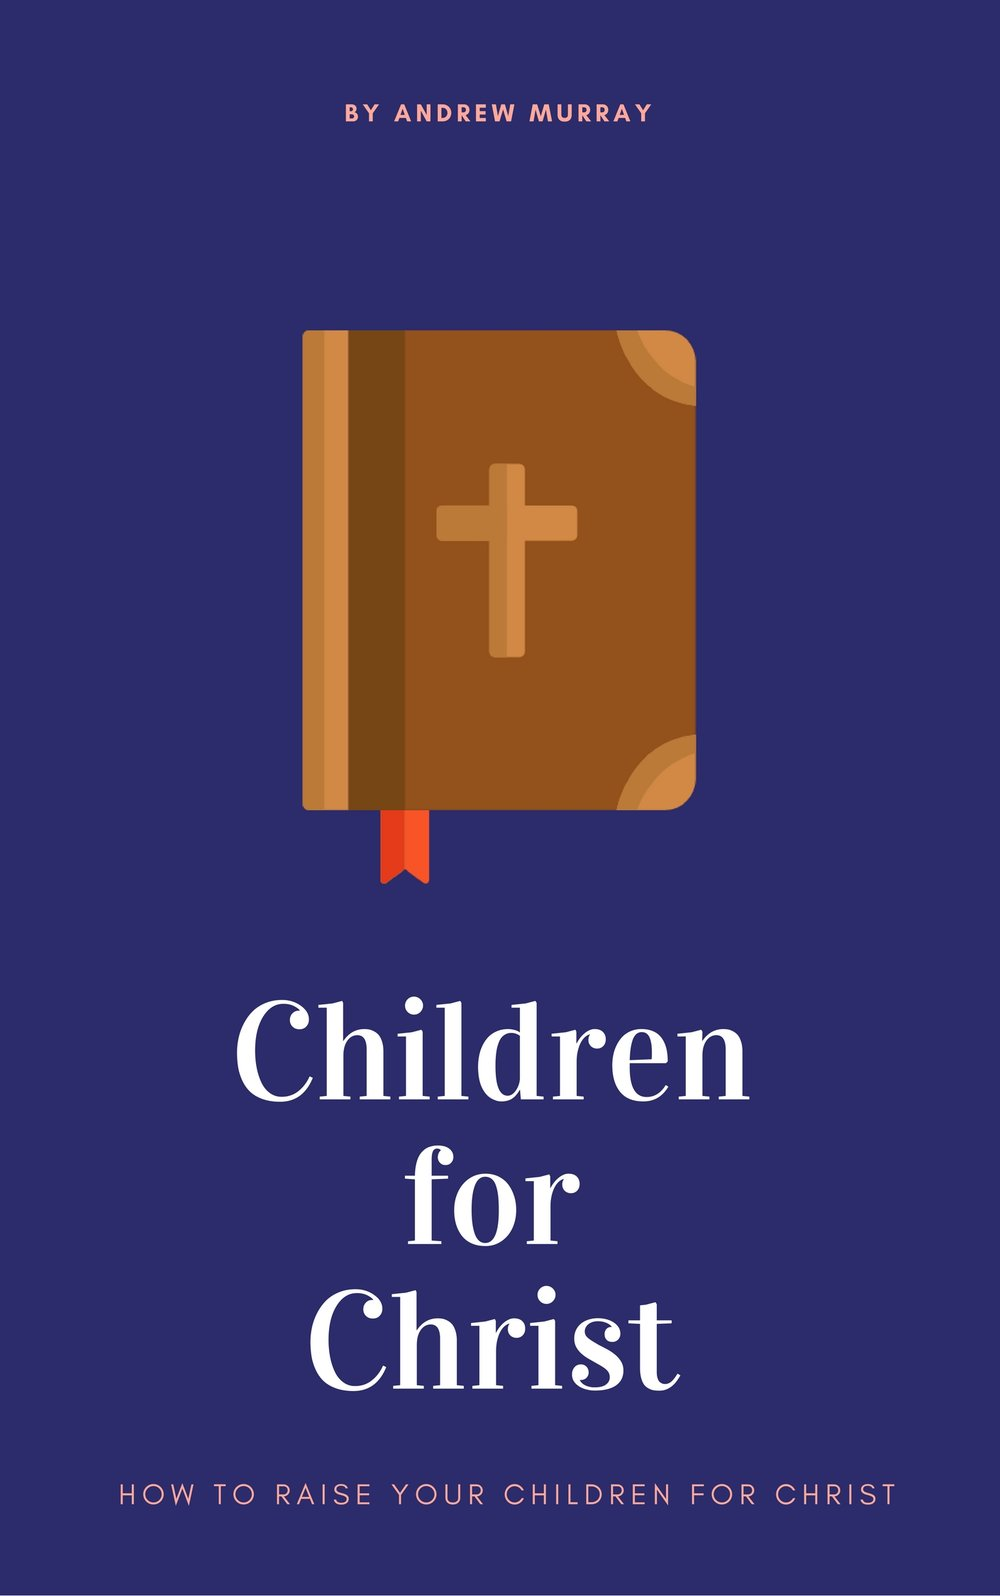 children-for-christ2.jpg